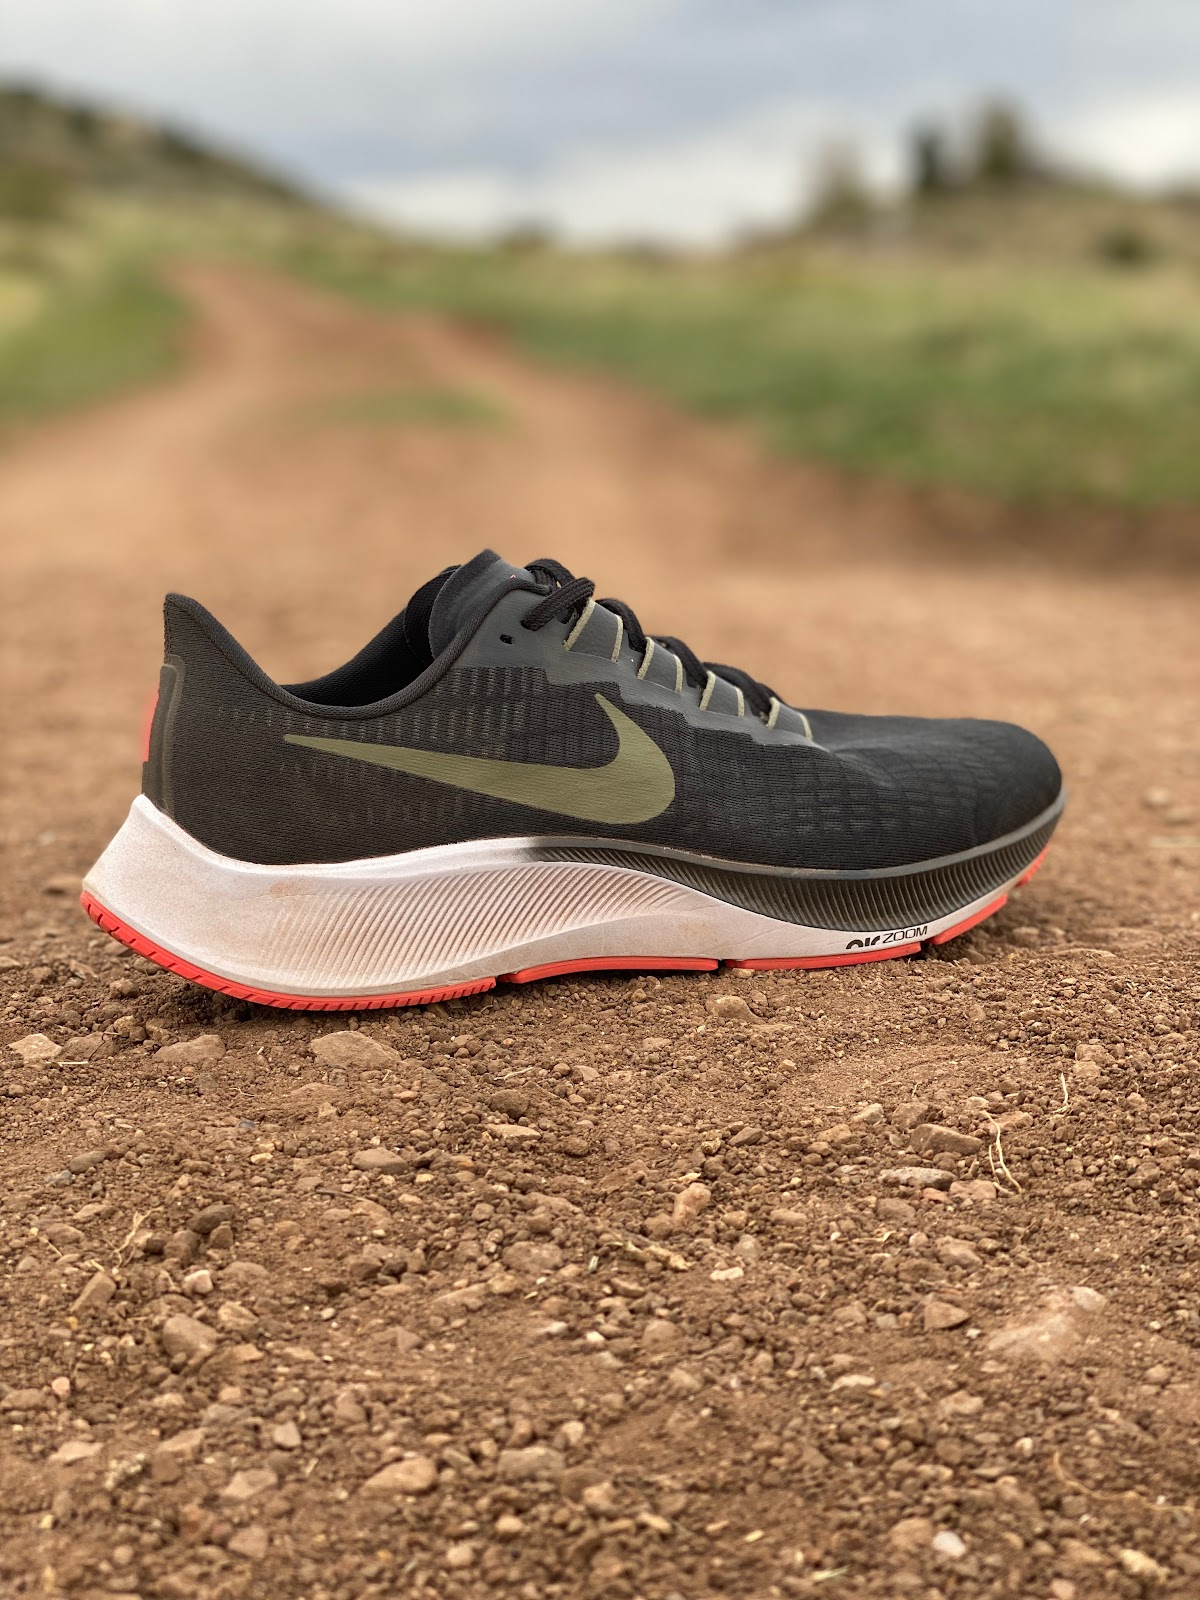 sonriendo Competidores Inspiración  Road Trail Run: Nike Zoom Pegasus 37 Multi Tester Review with 15  Comparisons including to women's version